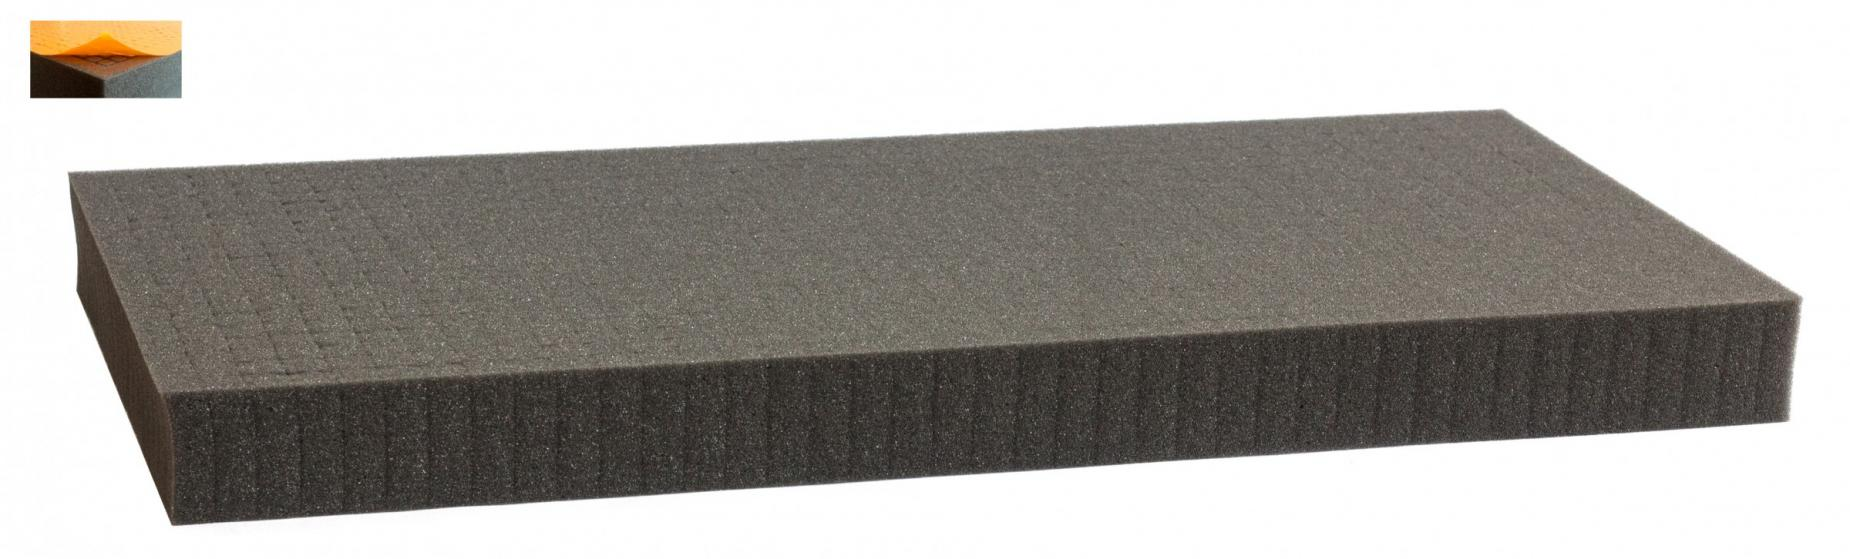 500 mm x 250 mm x 45 mm - Raster 12,5 mm - Pick and Pluck / Pre-Cubed foam tray self-adhesive